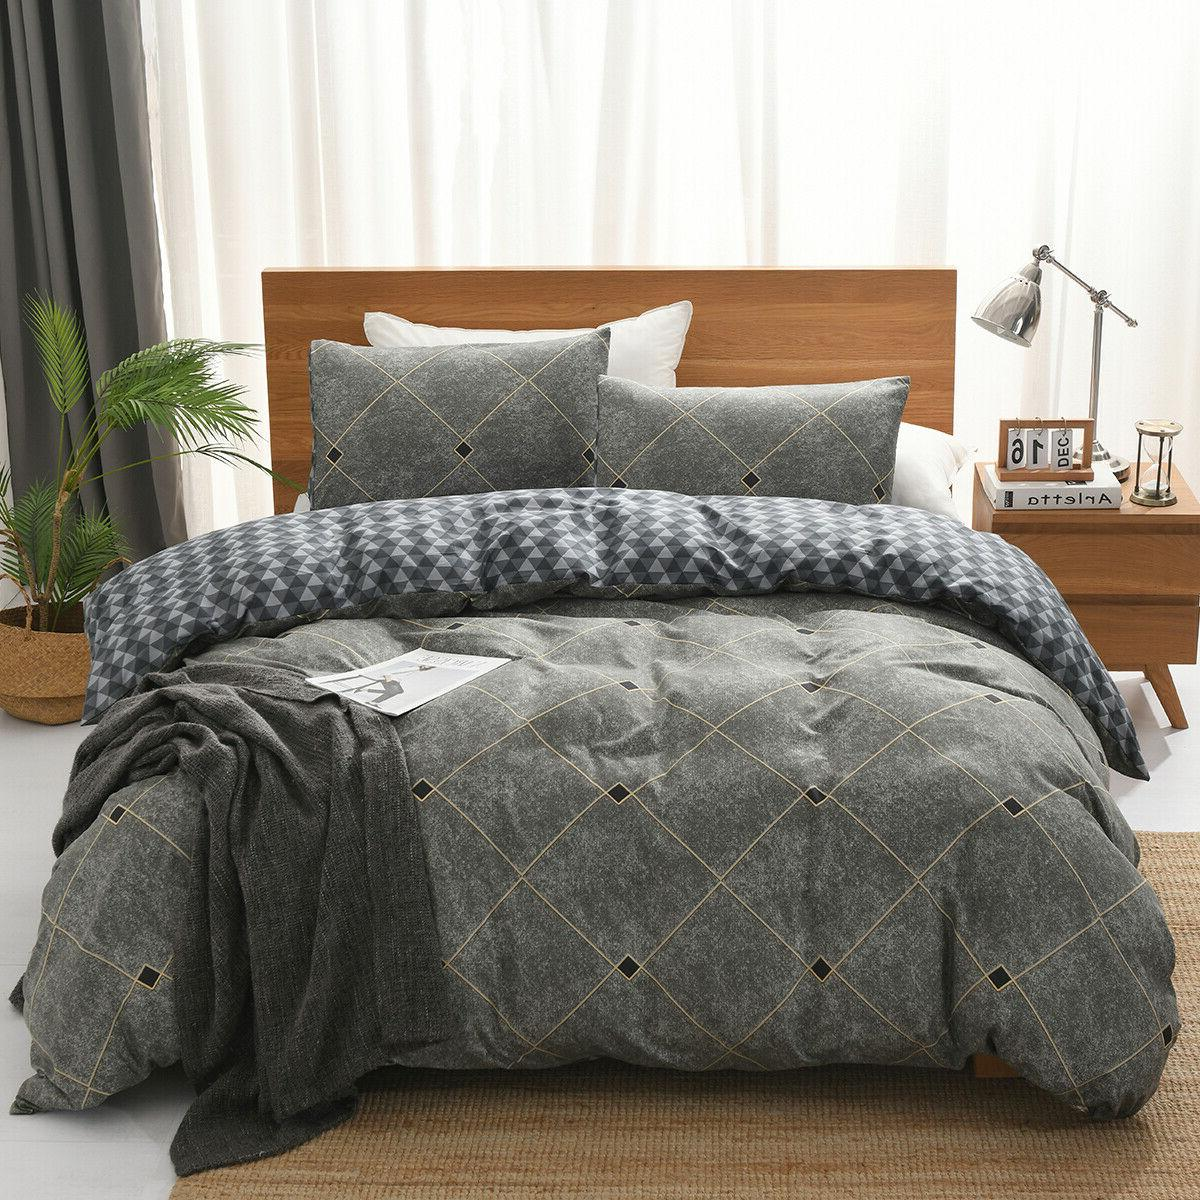 Striped Cover Sets Bedding For Mens Kids 7 colours available